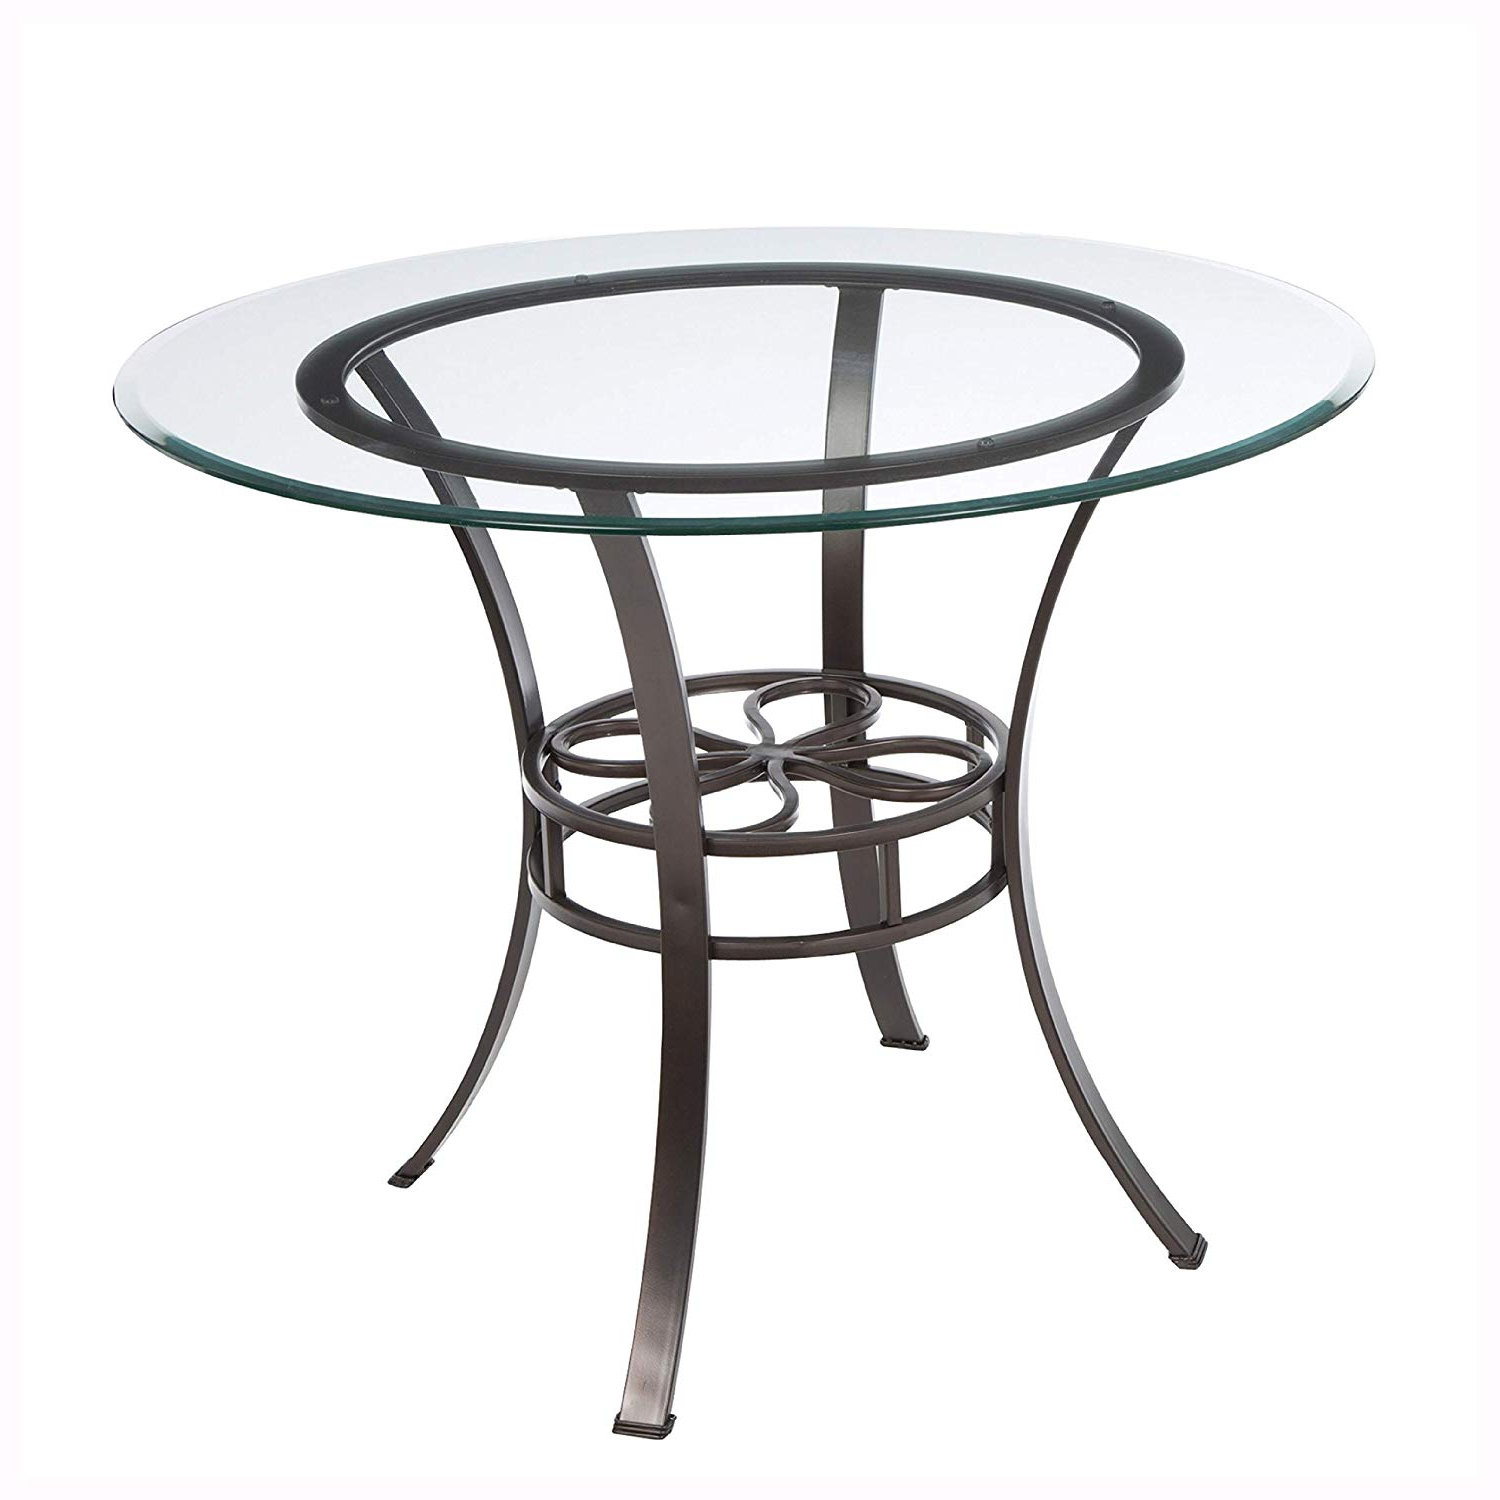 Most Up To Date Amazon – Round Glass Top Dining Table With Durable Metal Inside Modern Round Glass Top Dining Tables (Gallery 19 of 30)